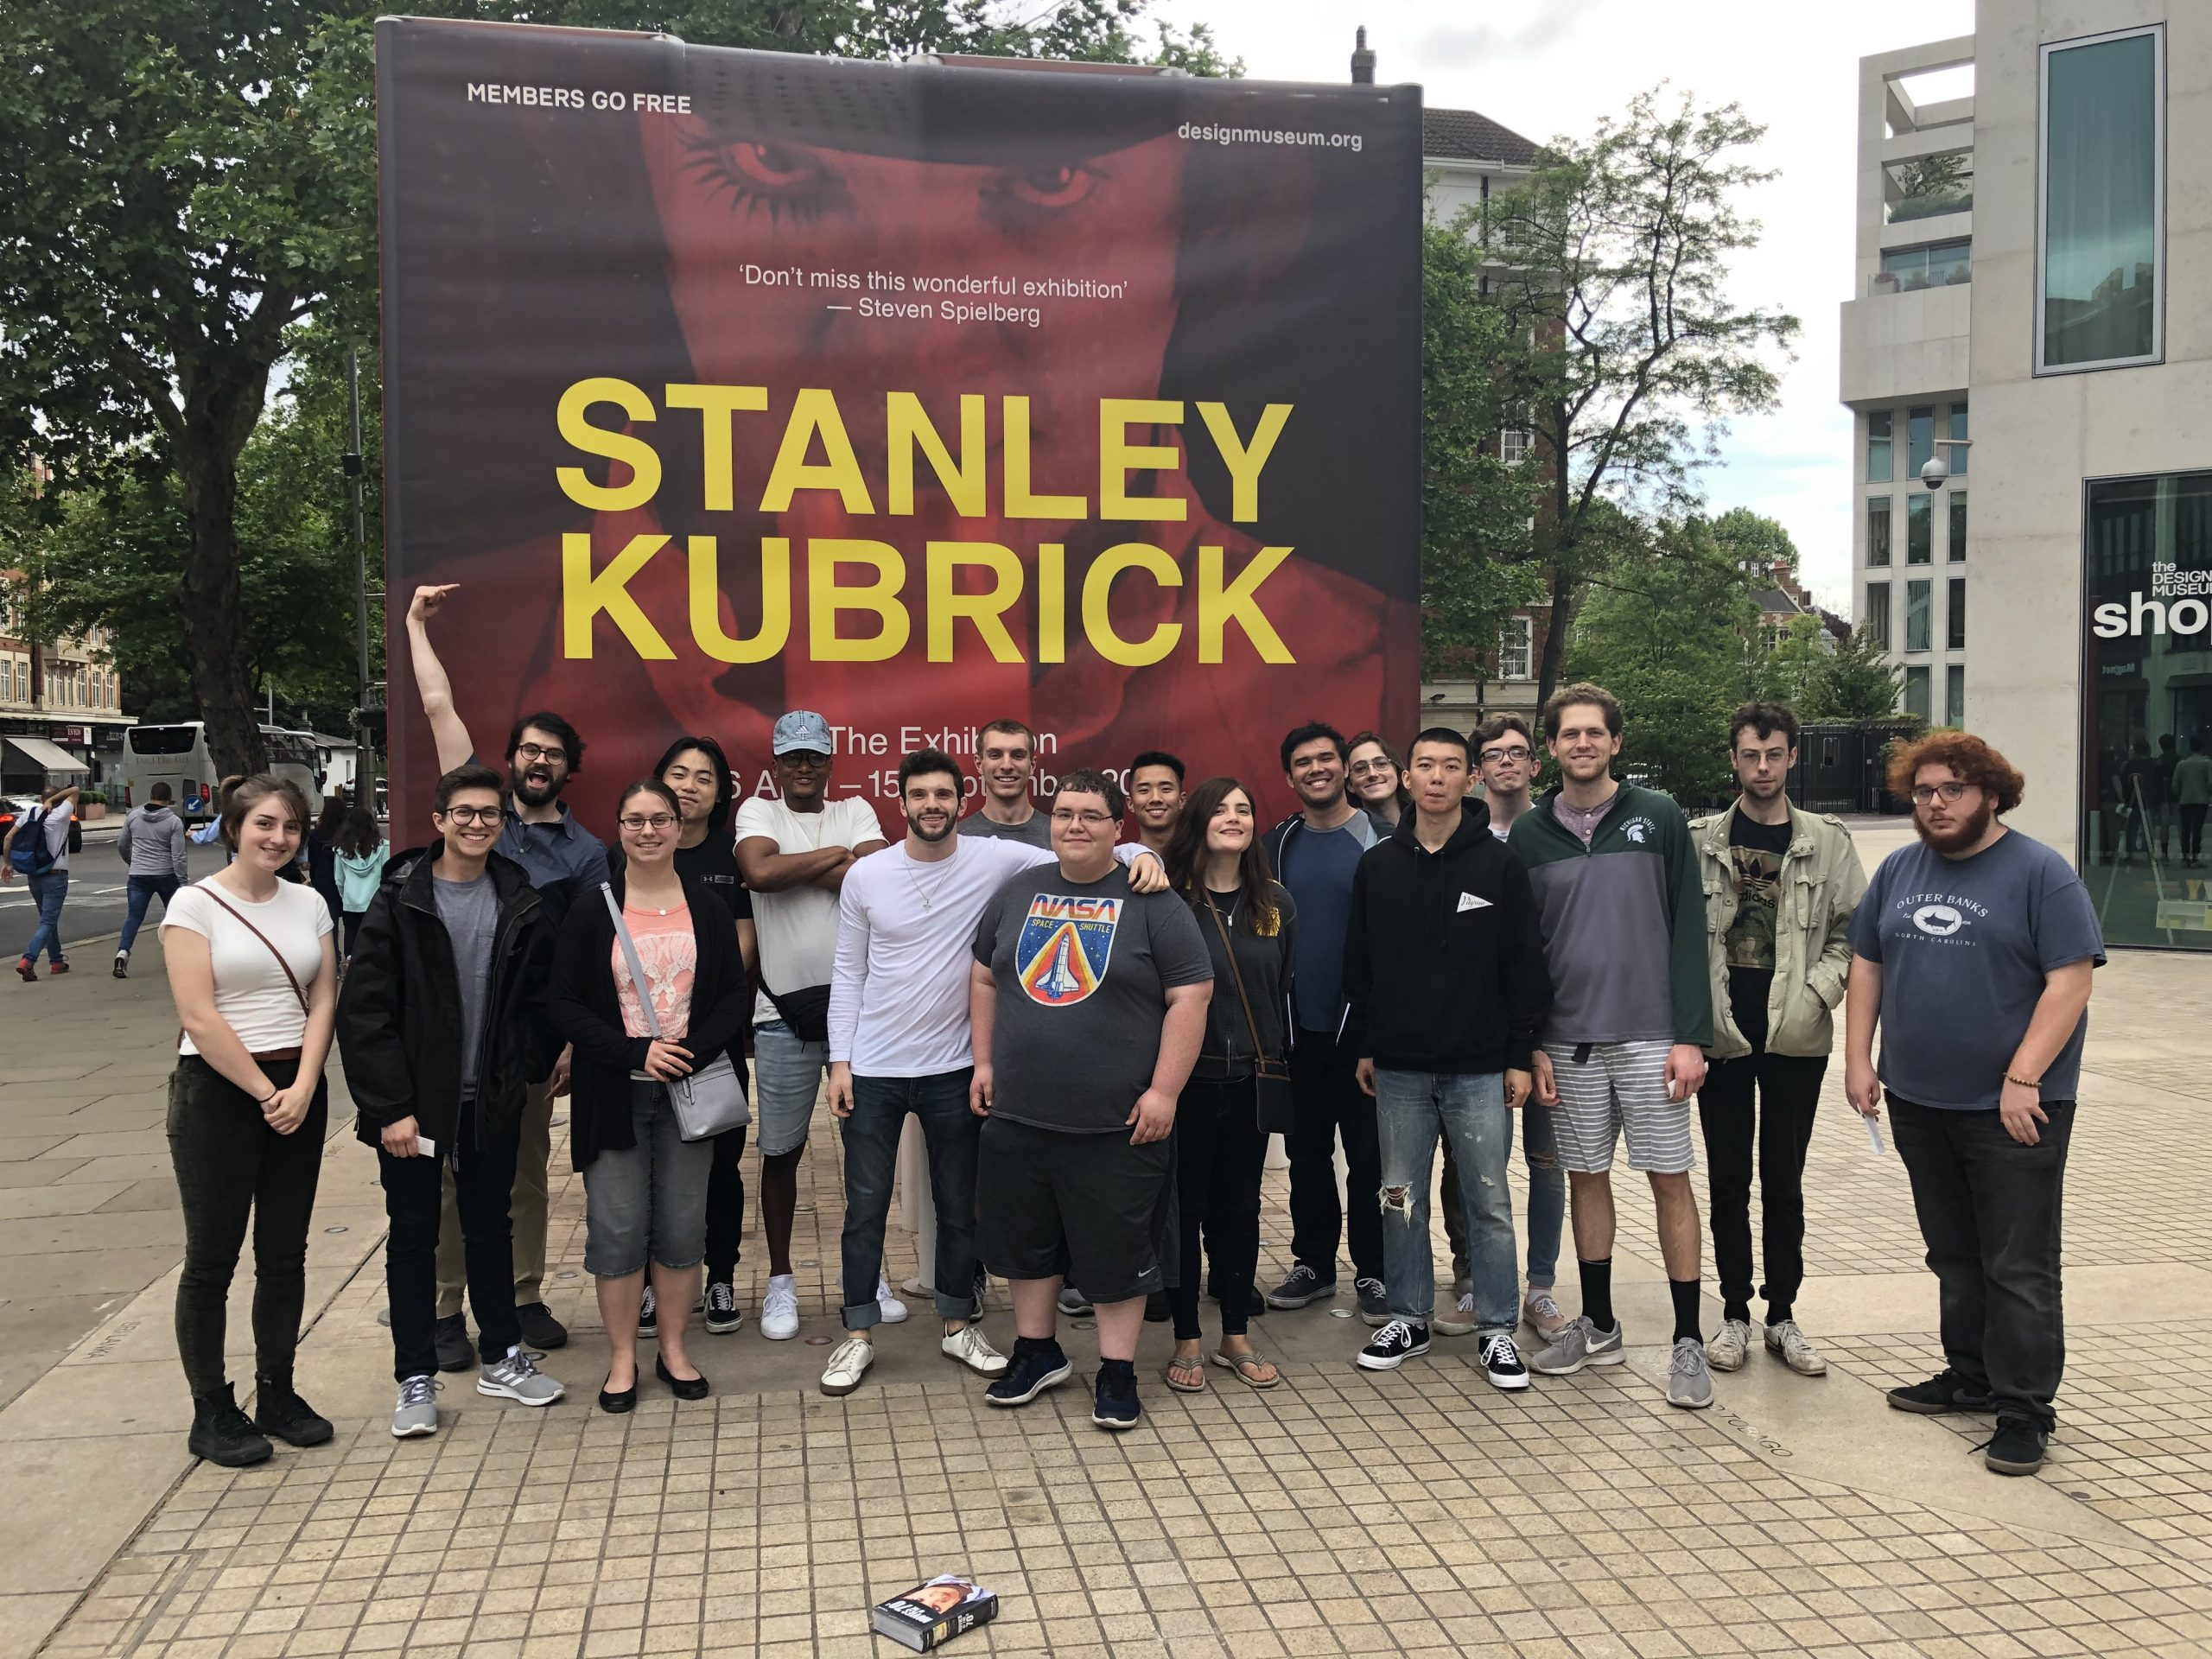 Stanley Kubrick exhibition at the London Design Museum, summer 2019